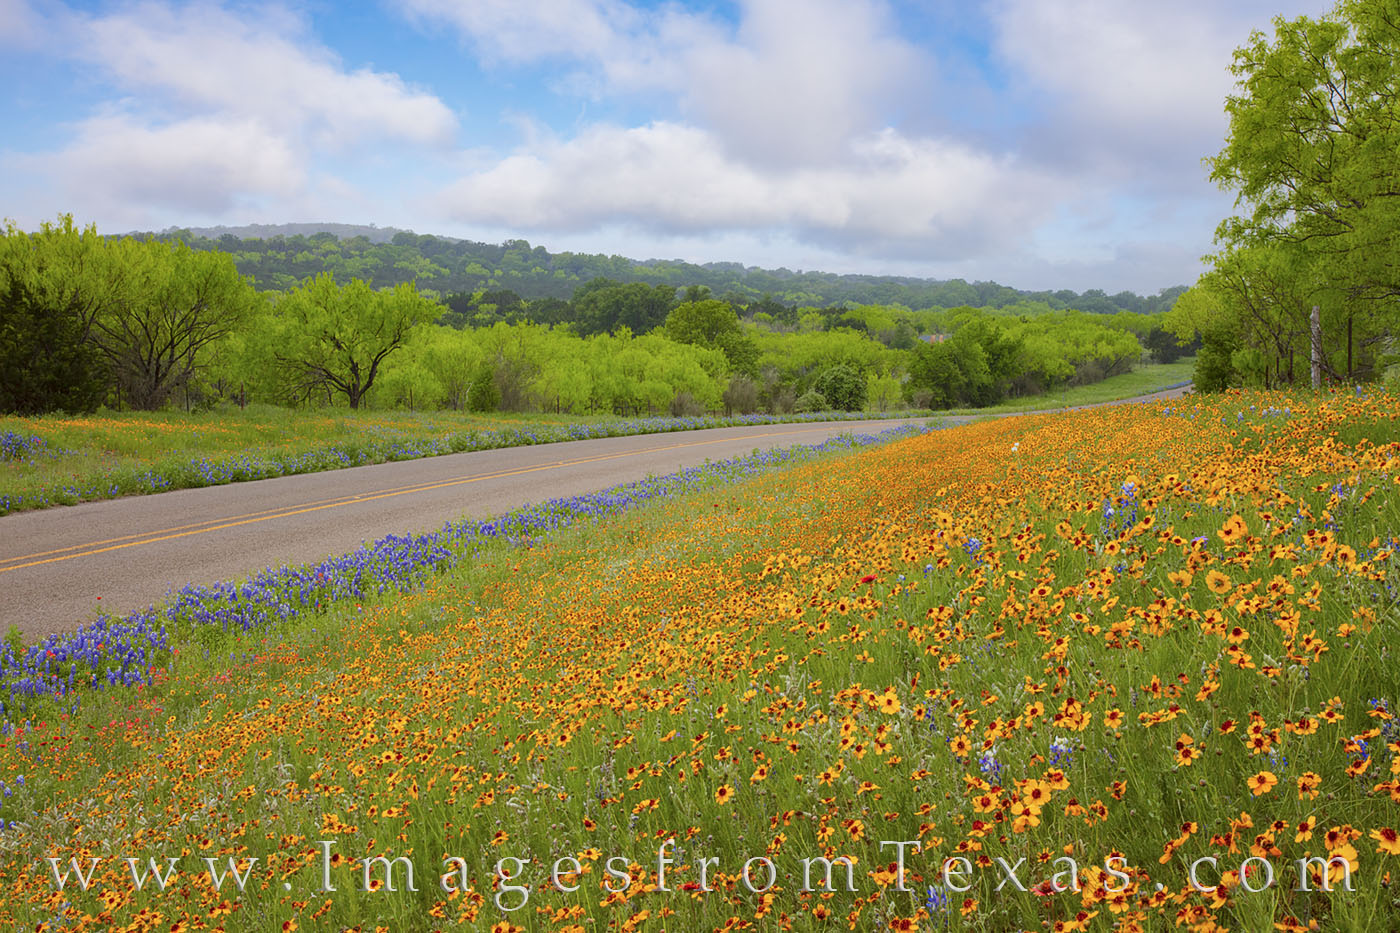 wildflowers, bluebonnets, gold, yellow, hill country, 3347, texas hill country, morning, clouds, fog, green, rural, photo